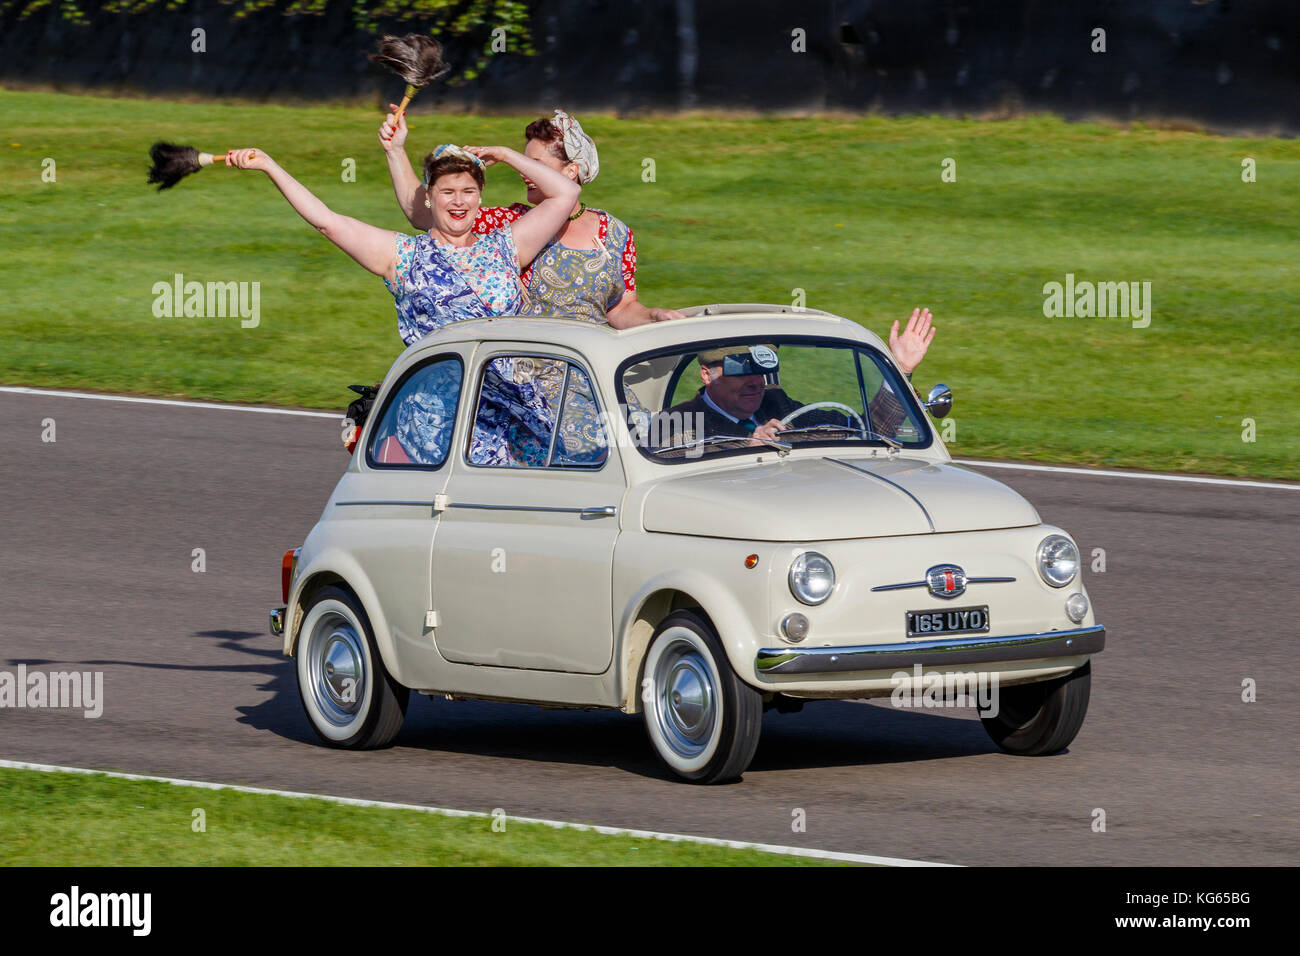 The classic Fiat 500 is celebrated in an Italian cavalcade at the 2017 Goodwood Revival, Sussex, UK. - Stock Image